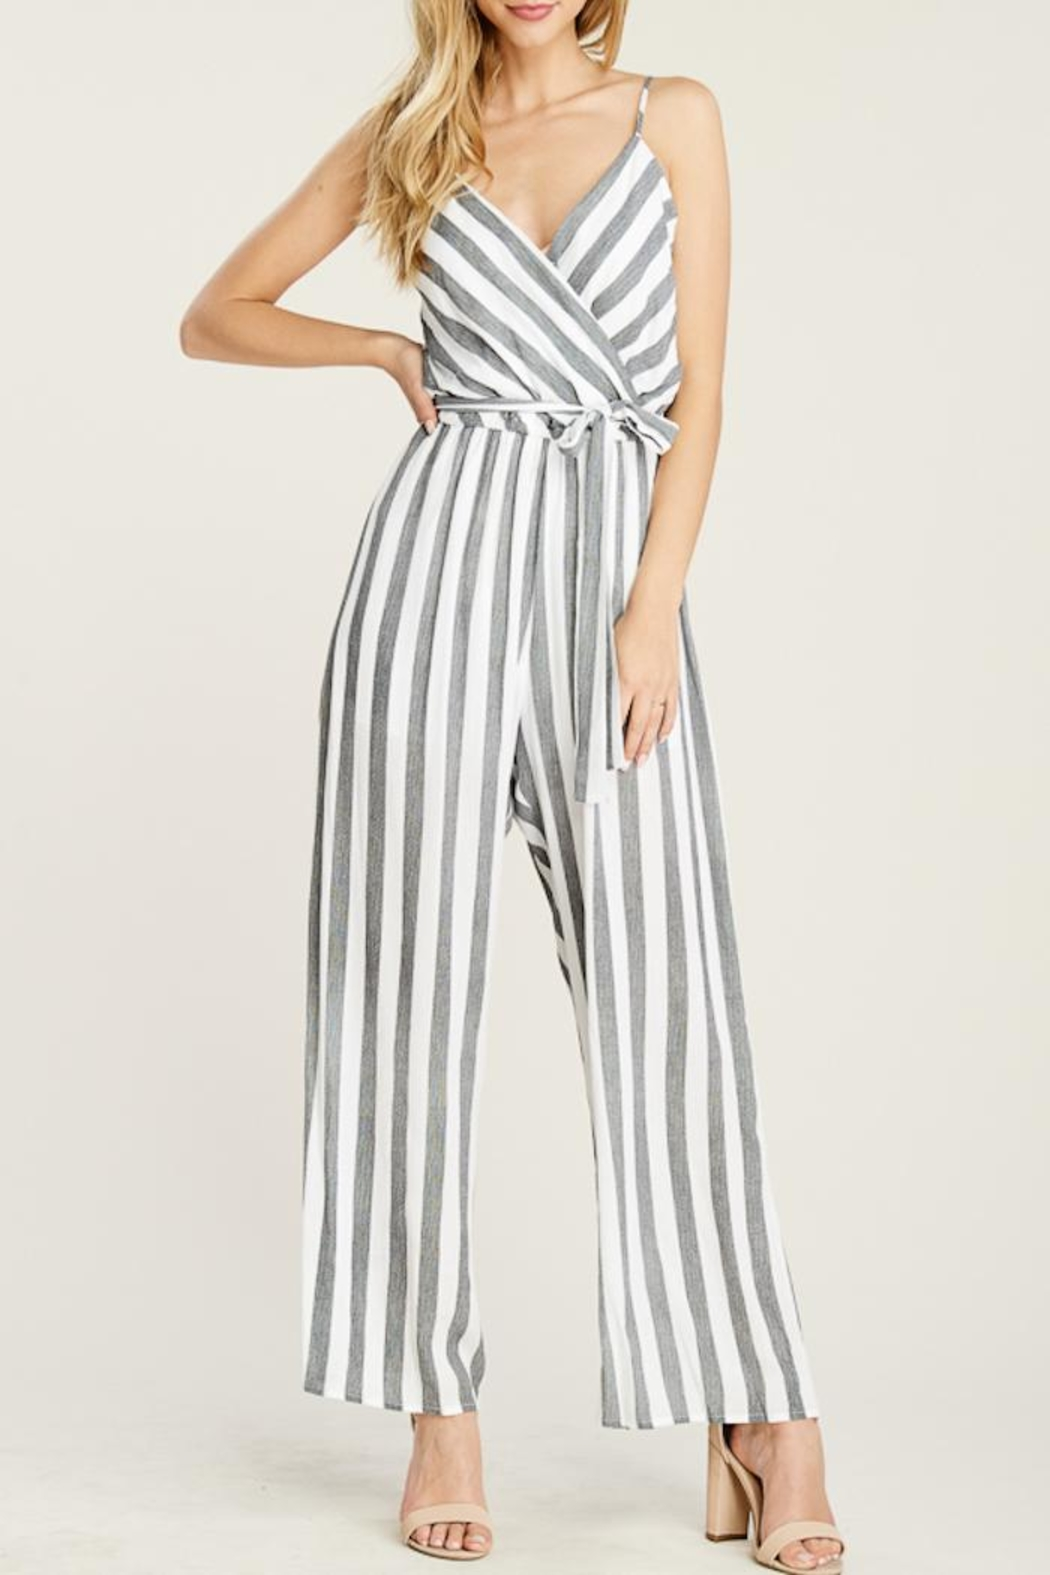 832f724c82ba Staccato Seeing Stripes Jumpsuit from Minnesota by Apricot Lane ...